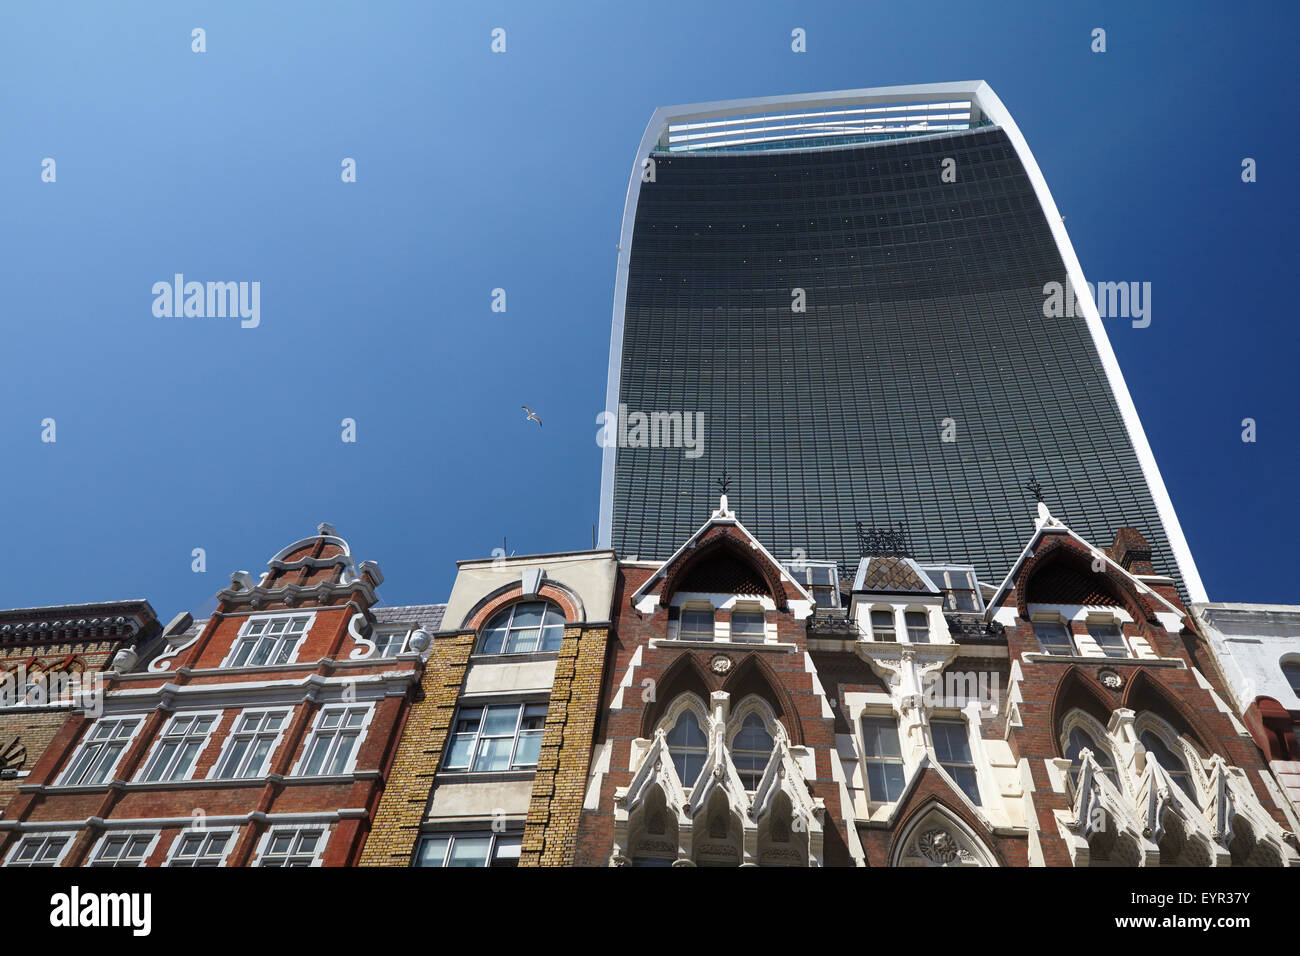 The Walkie-Talkie building (20 Fenchurch Street) seen from Eastcheap Street - Stock Image